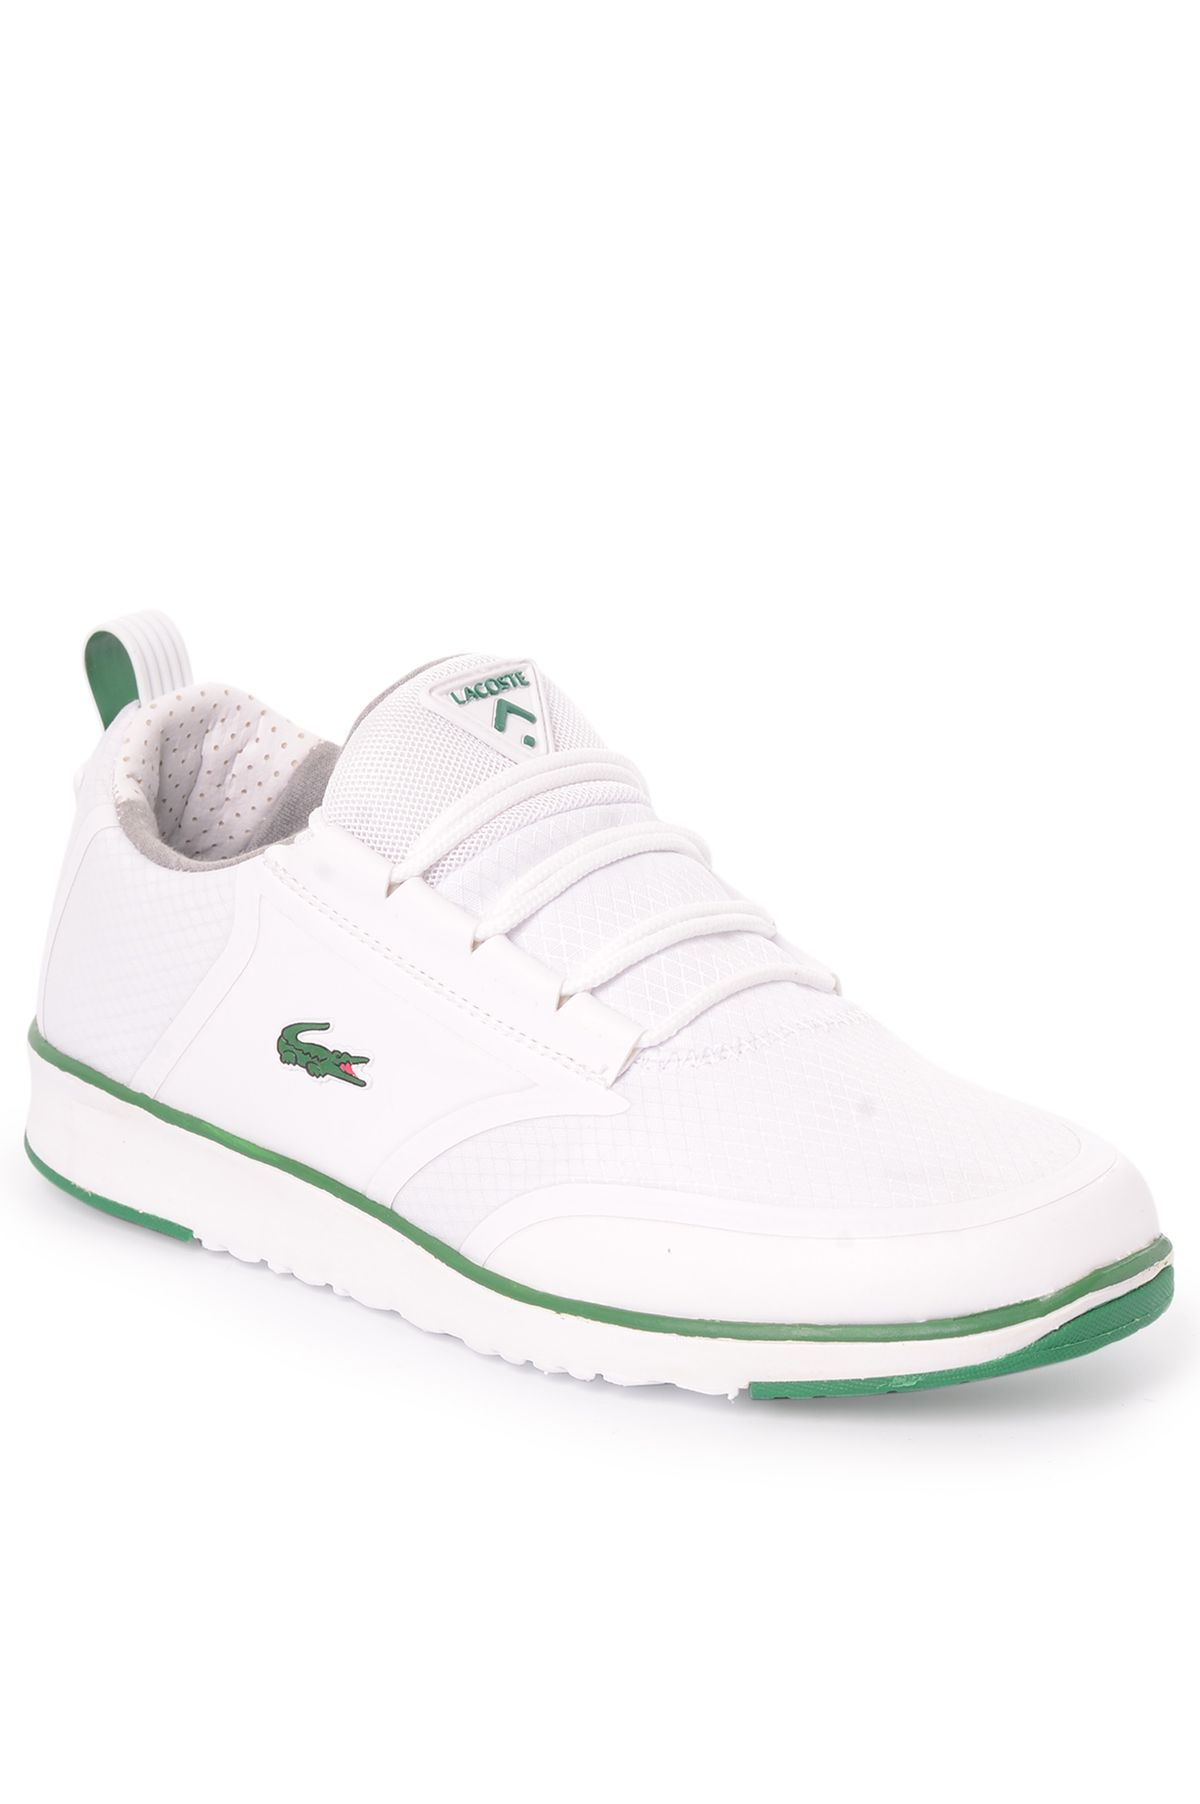 2fb70daef86 Tênis Lacoste Light Lt